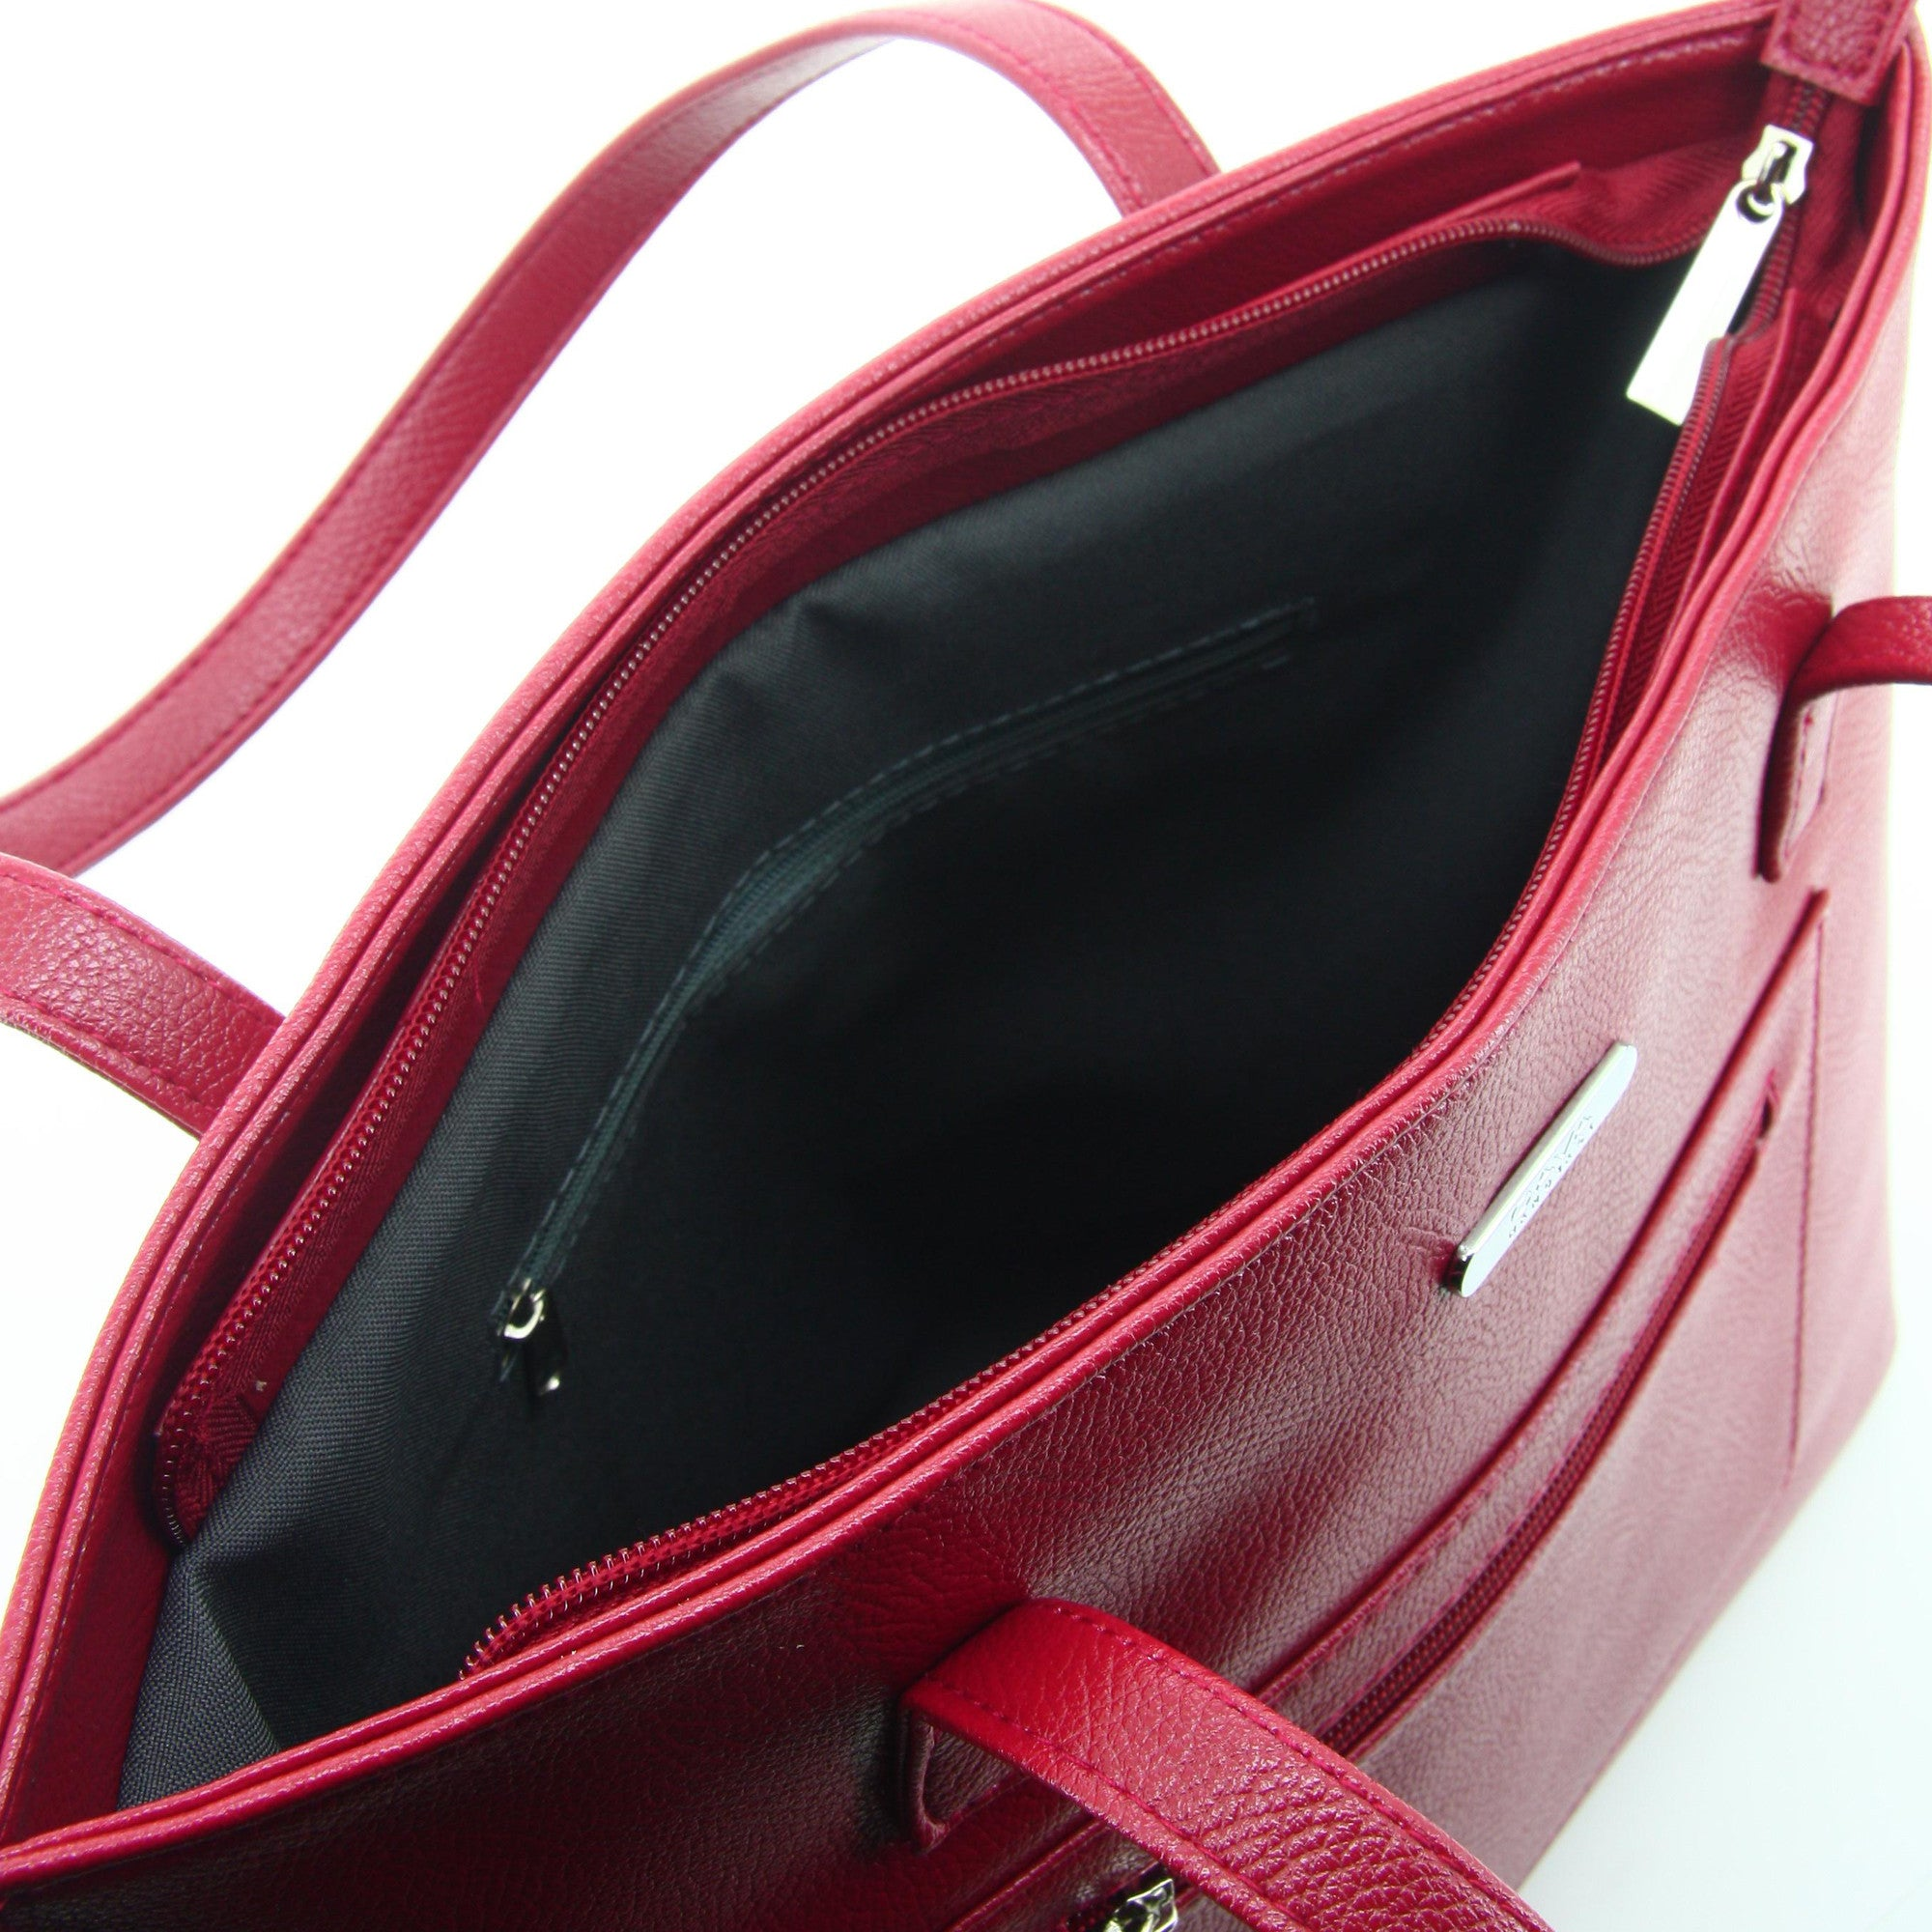 C17FE744RE 2-IN-1 TOTE BAG AND SLING (Red)